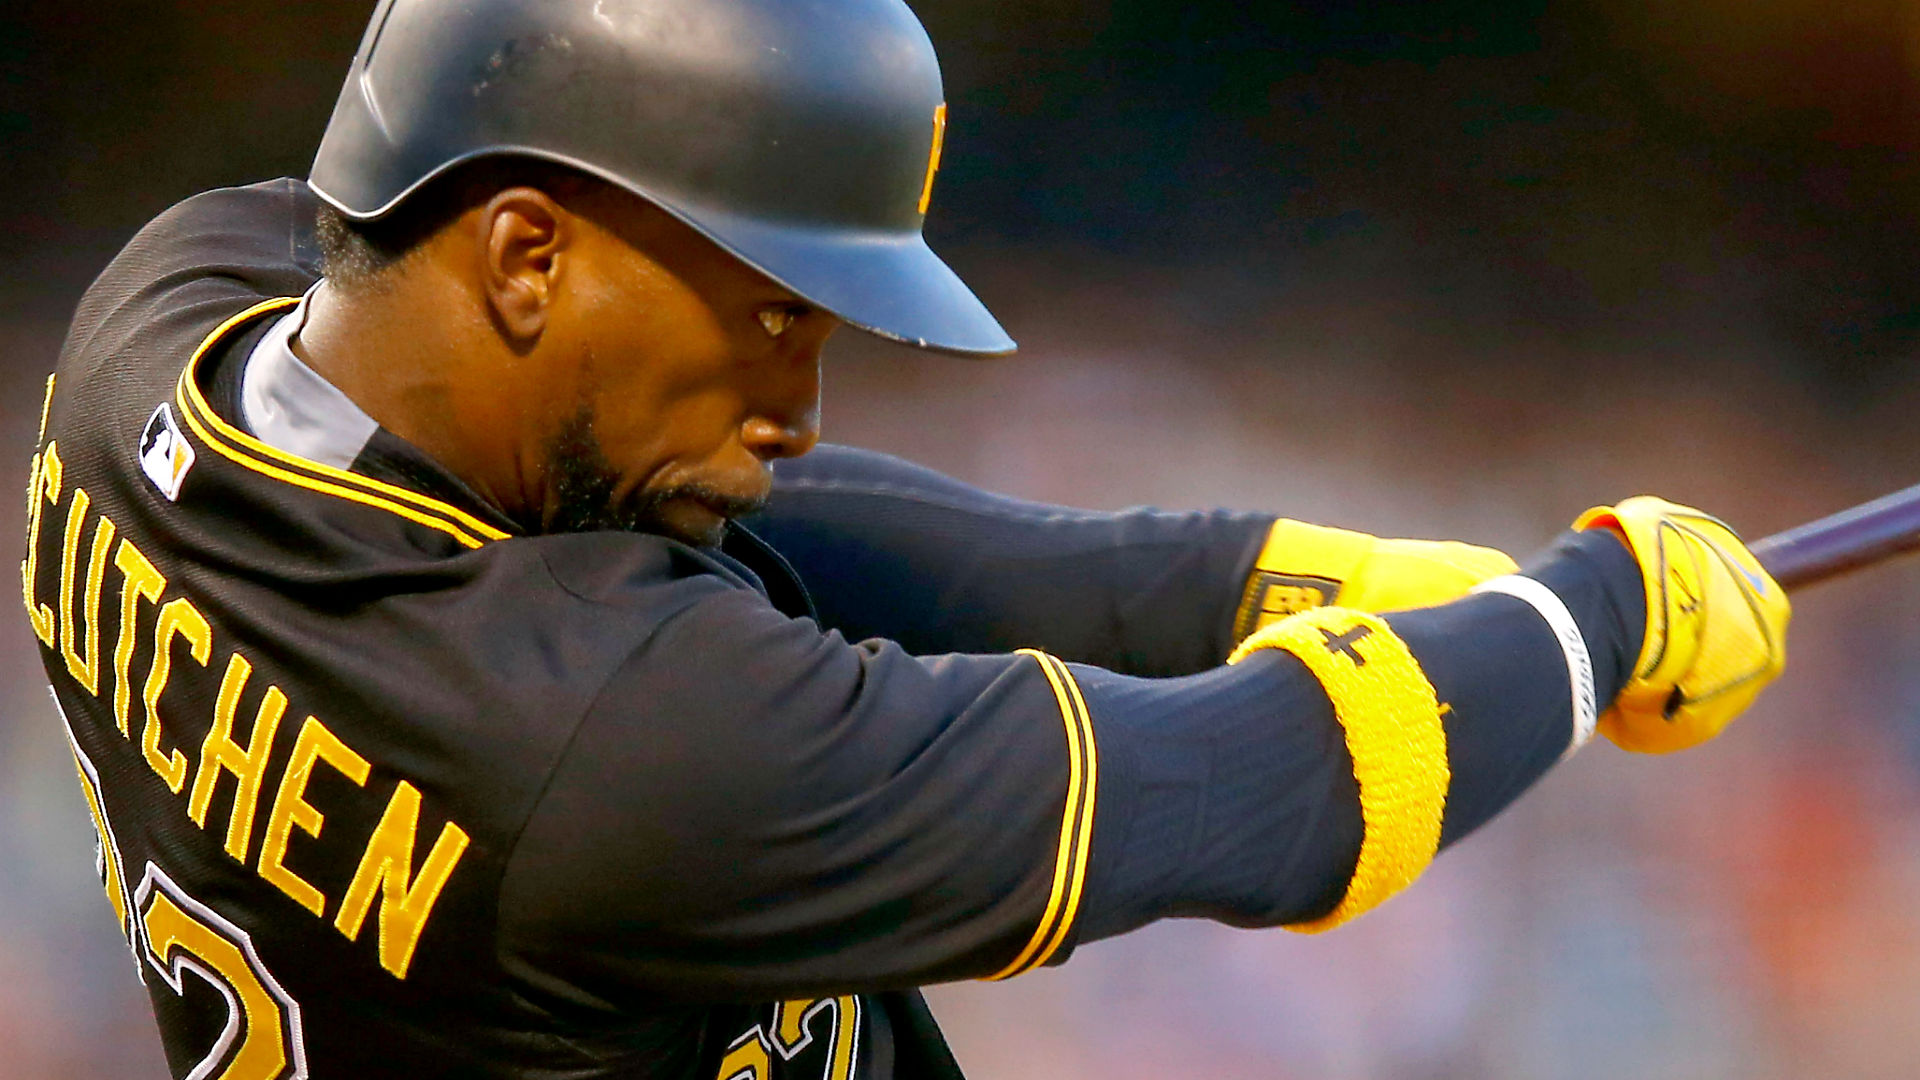 Mccutchen-andrew012916-getty-ftrjpg_18km85nm8g2nj14epll0jtbt65